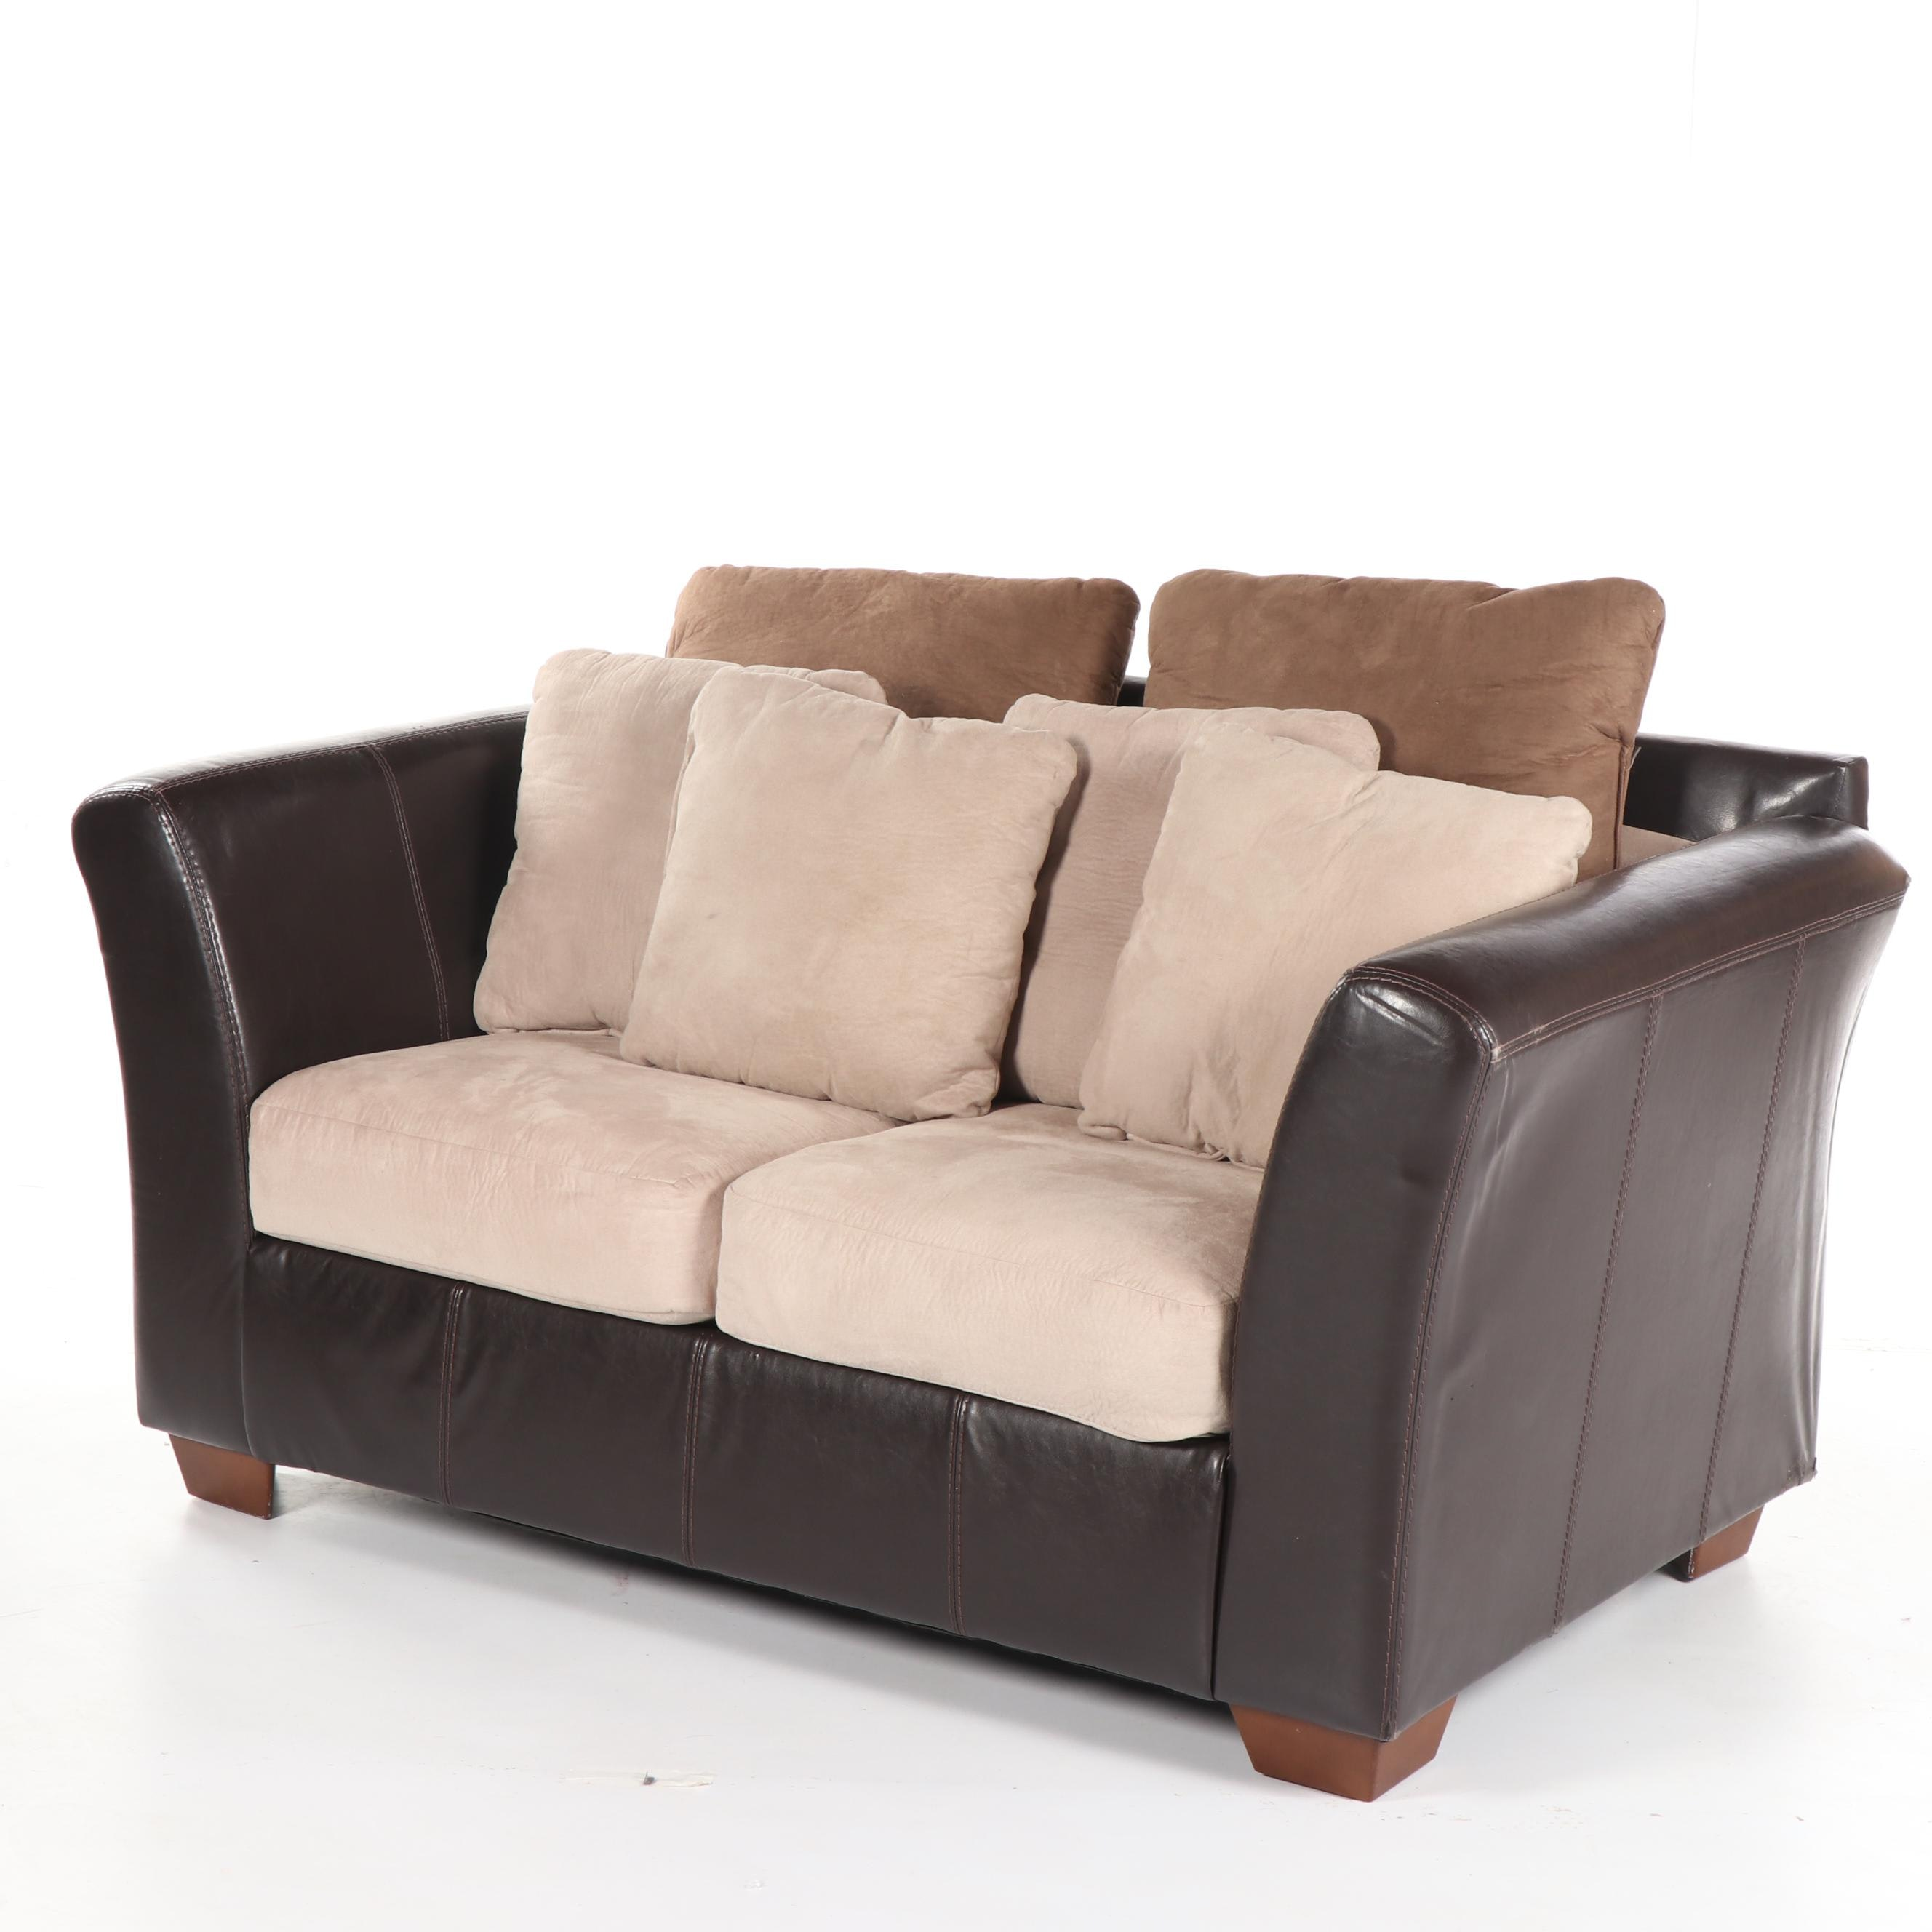 Faux Leather and Suede Loveseat, 21st Century